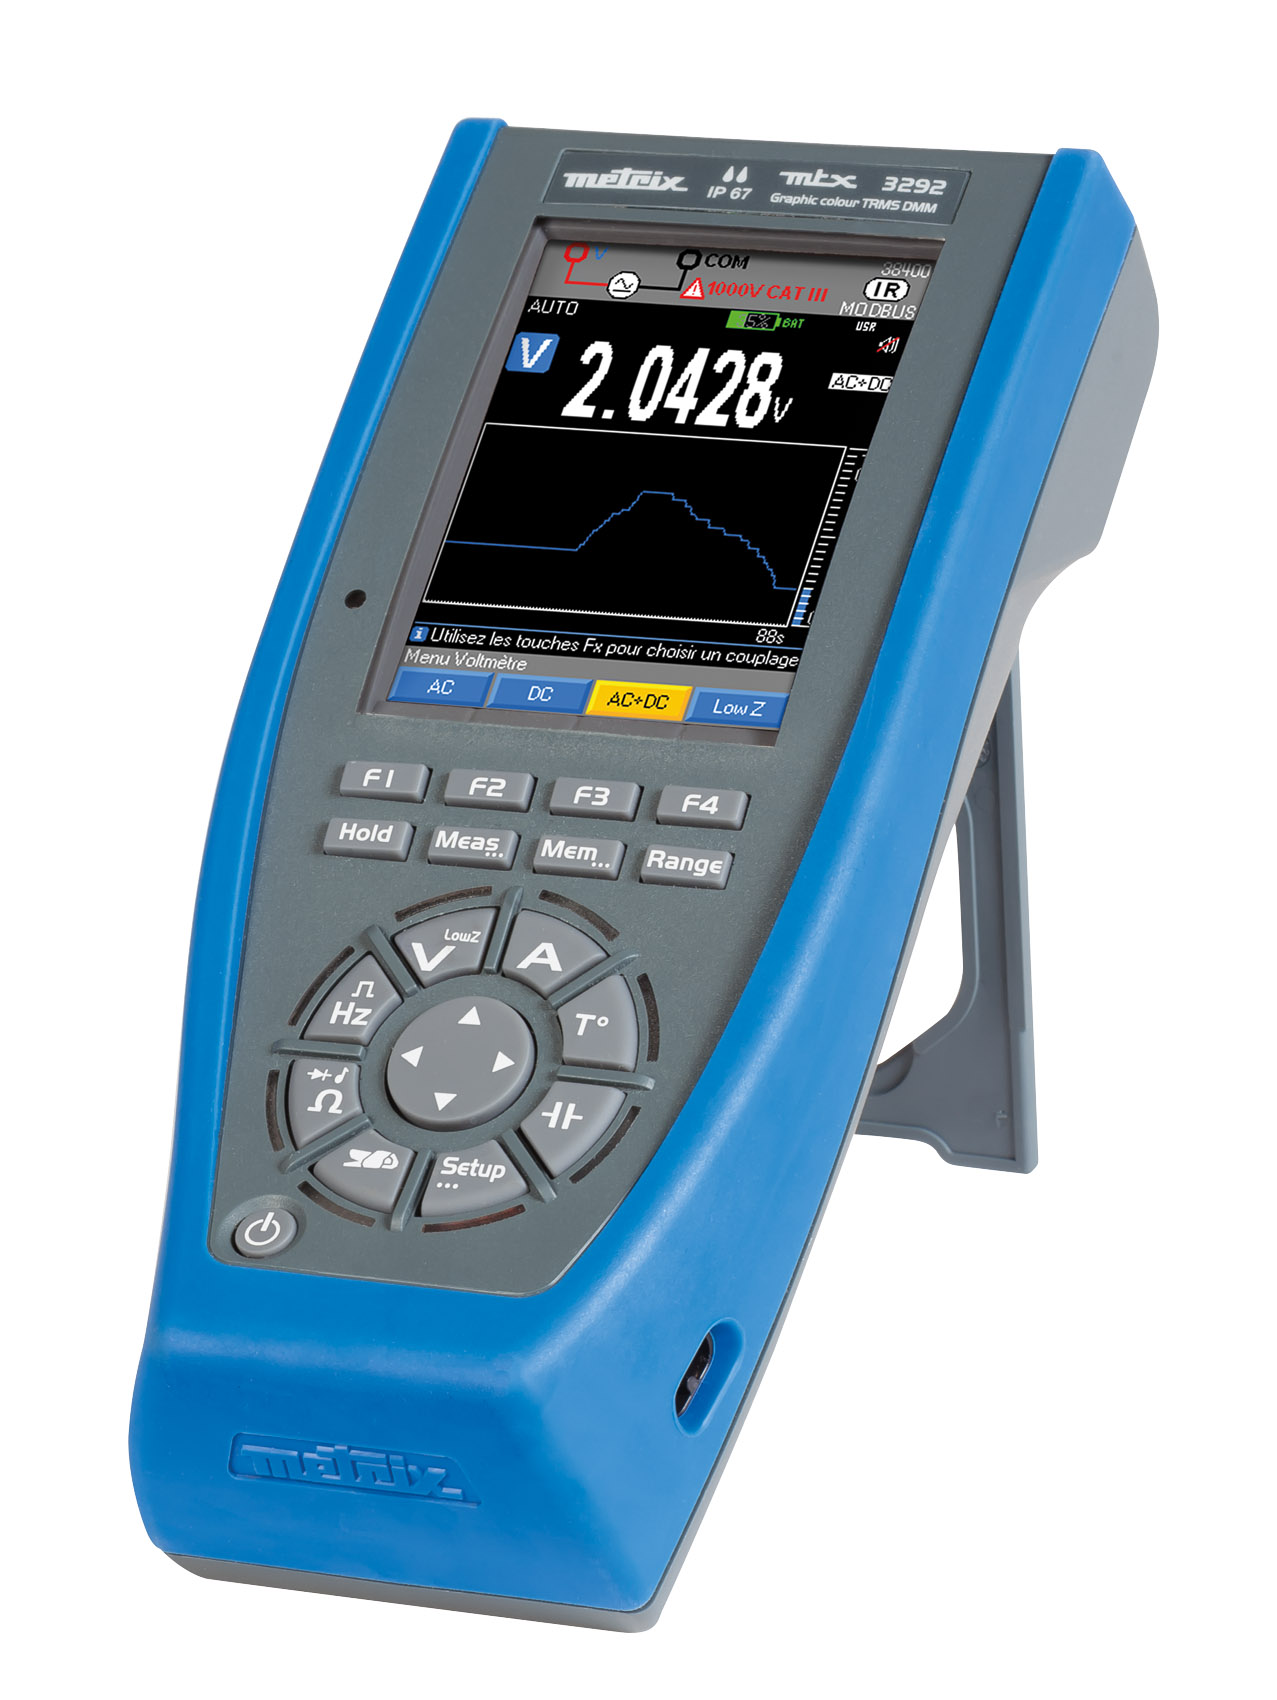 ASYC IV, the 1st multimeters with graphical colour screens